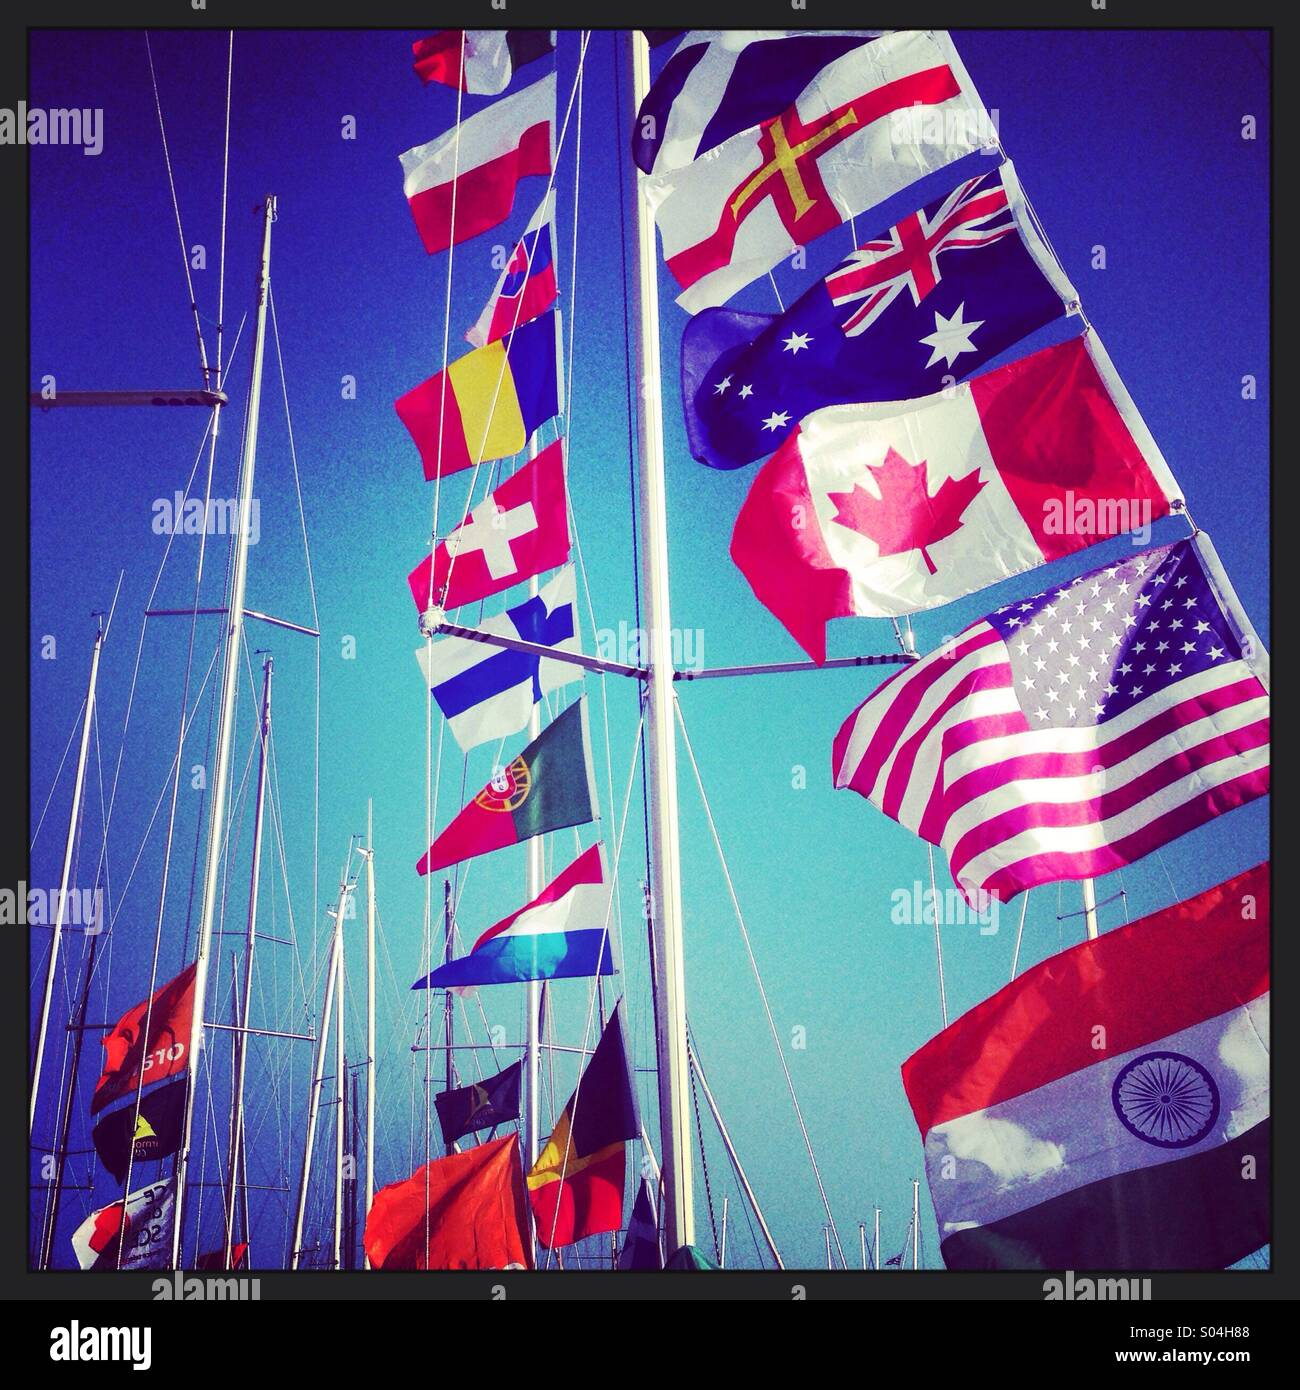 Flags on a yacht - Stock Image